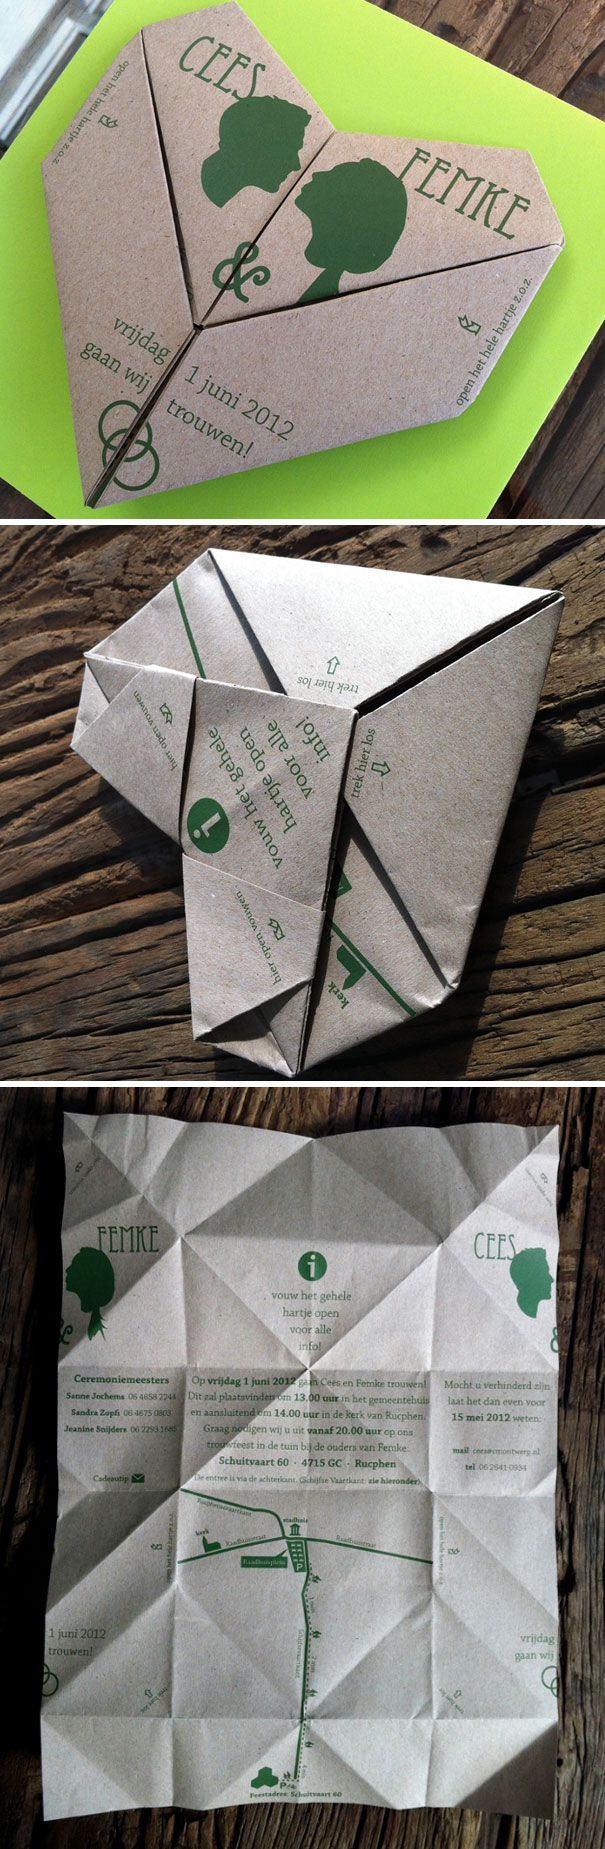 10 creative wedding invitations that no one would dare to resist 10 creative wedding invitations that no one would dare to resist jeuxipadfo Images